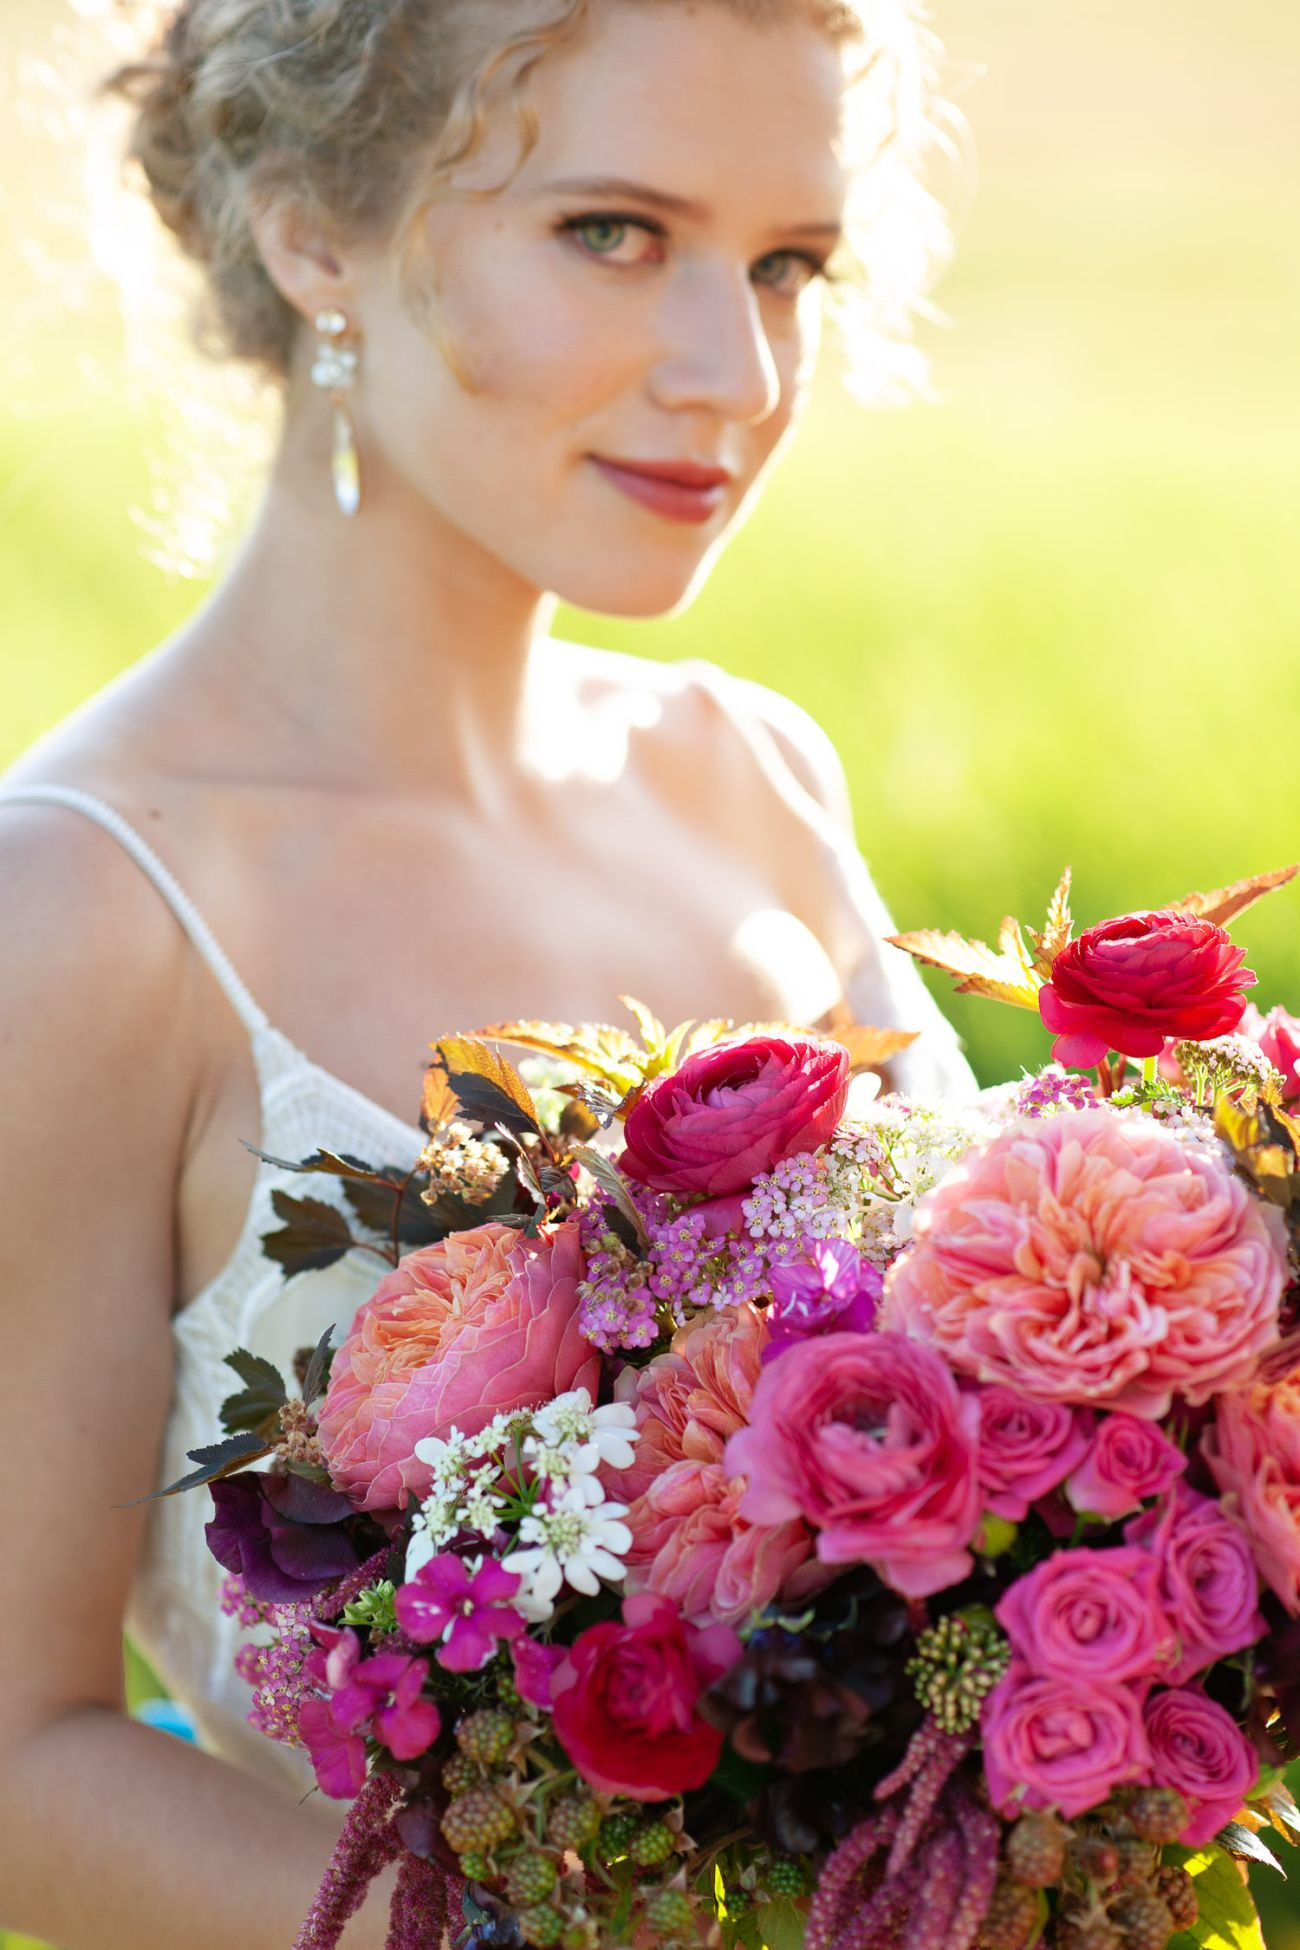 bride carries a bouquet of pink roses captured by Tara Whittaker Photography